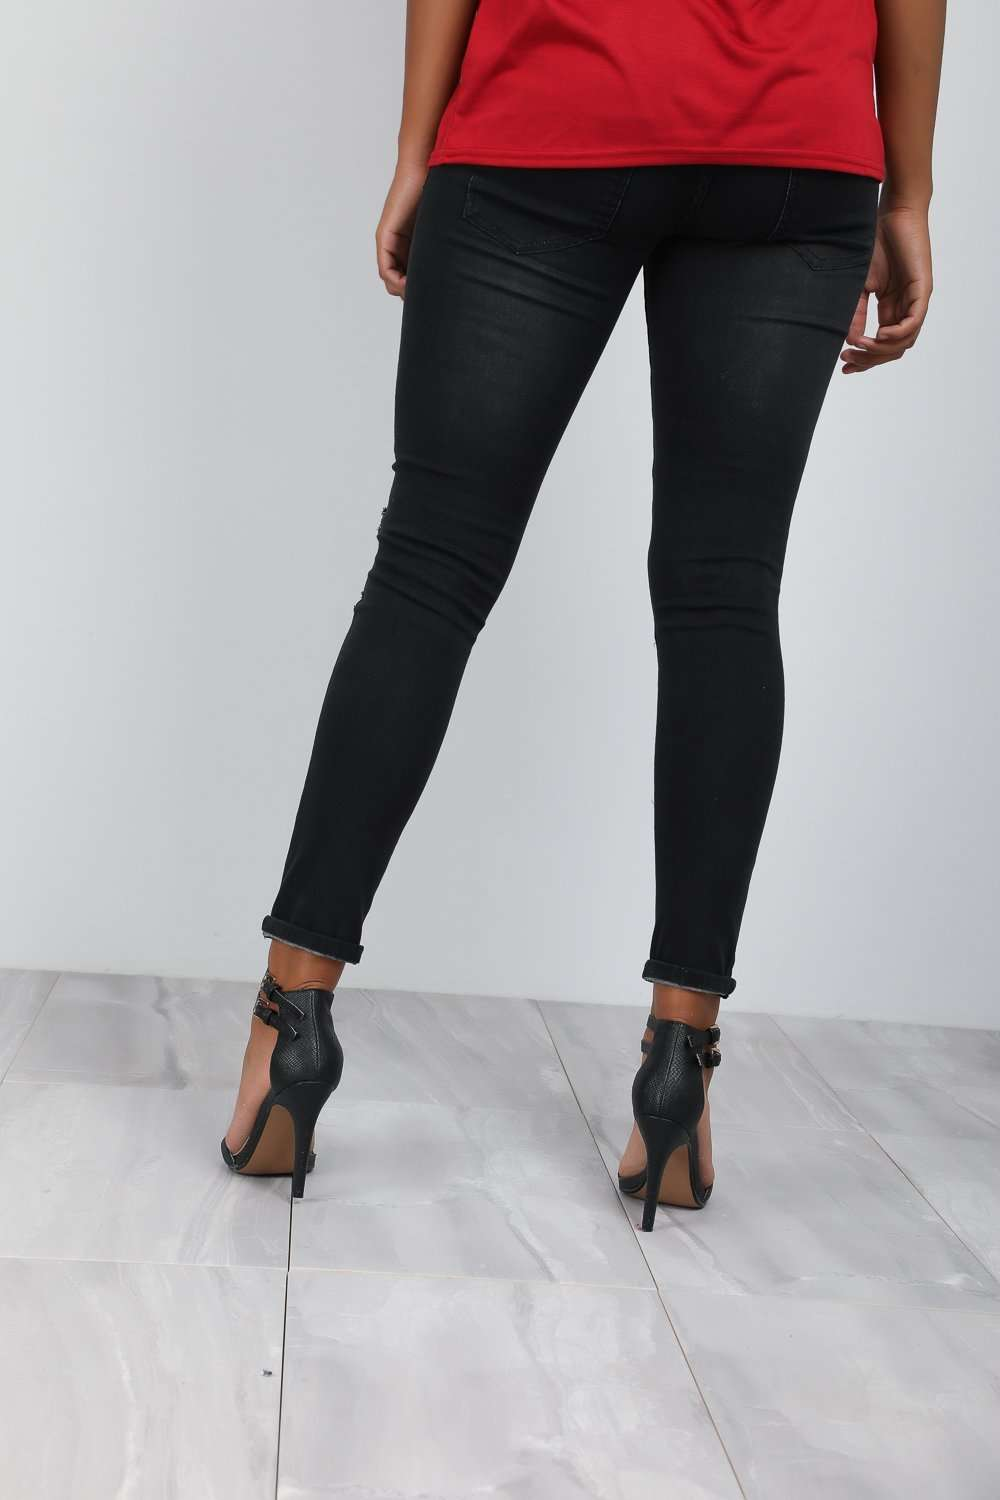 Heather High Waist Ripped Knee Skinny Jeans - bejealous-com